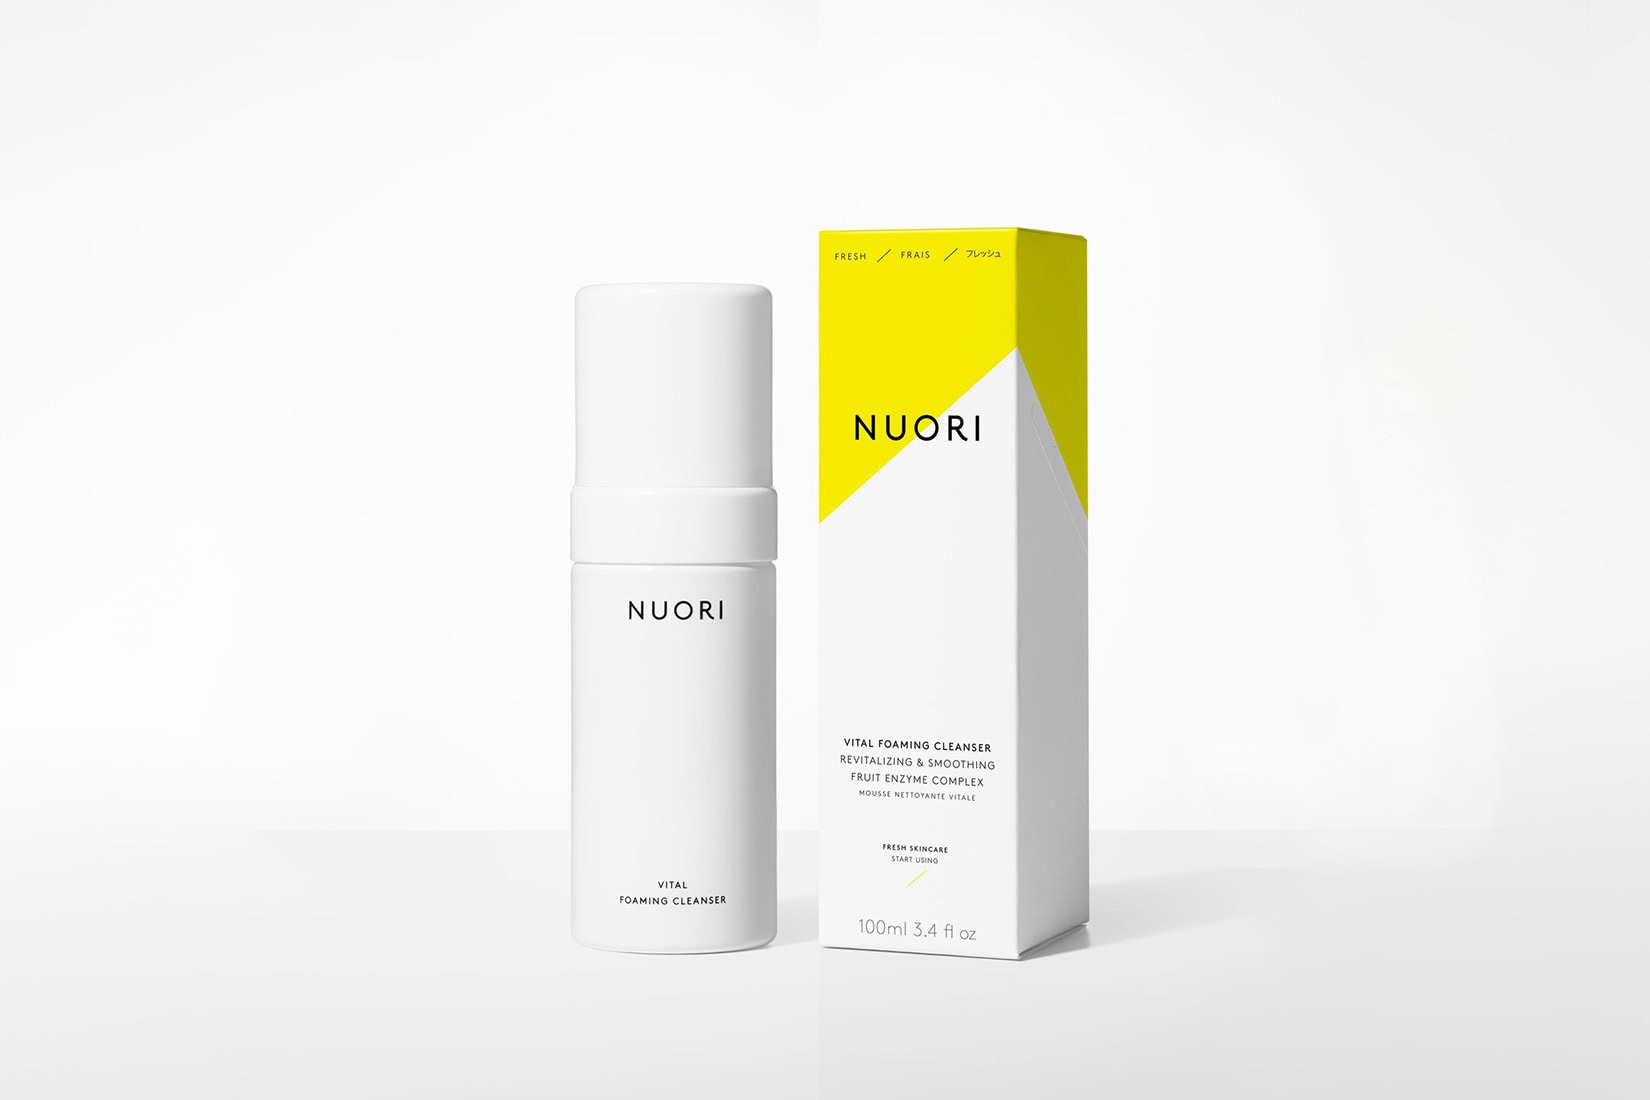 best natural organic beauty skincare nuori vital foaming cleanser - Luxe Digital